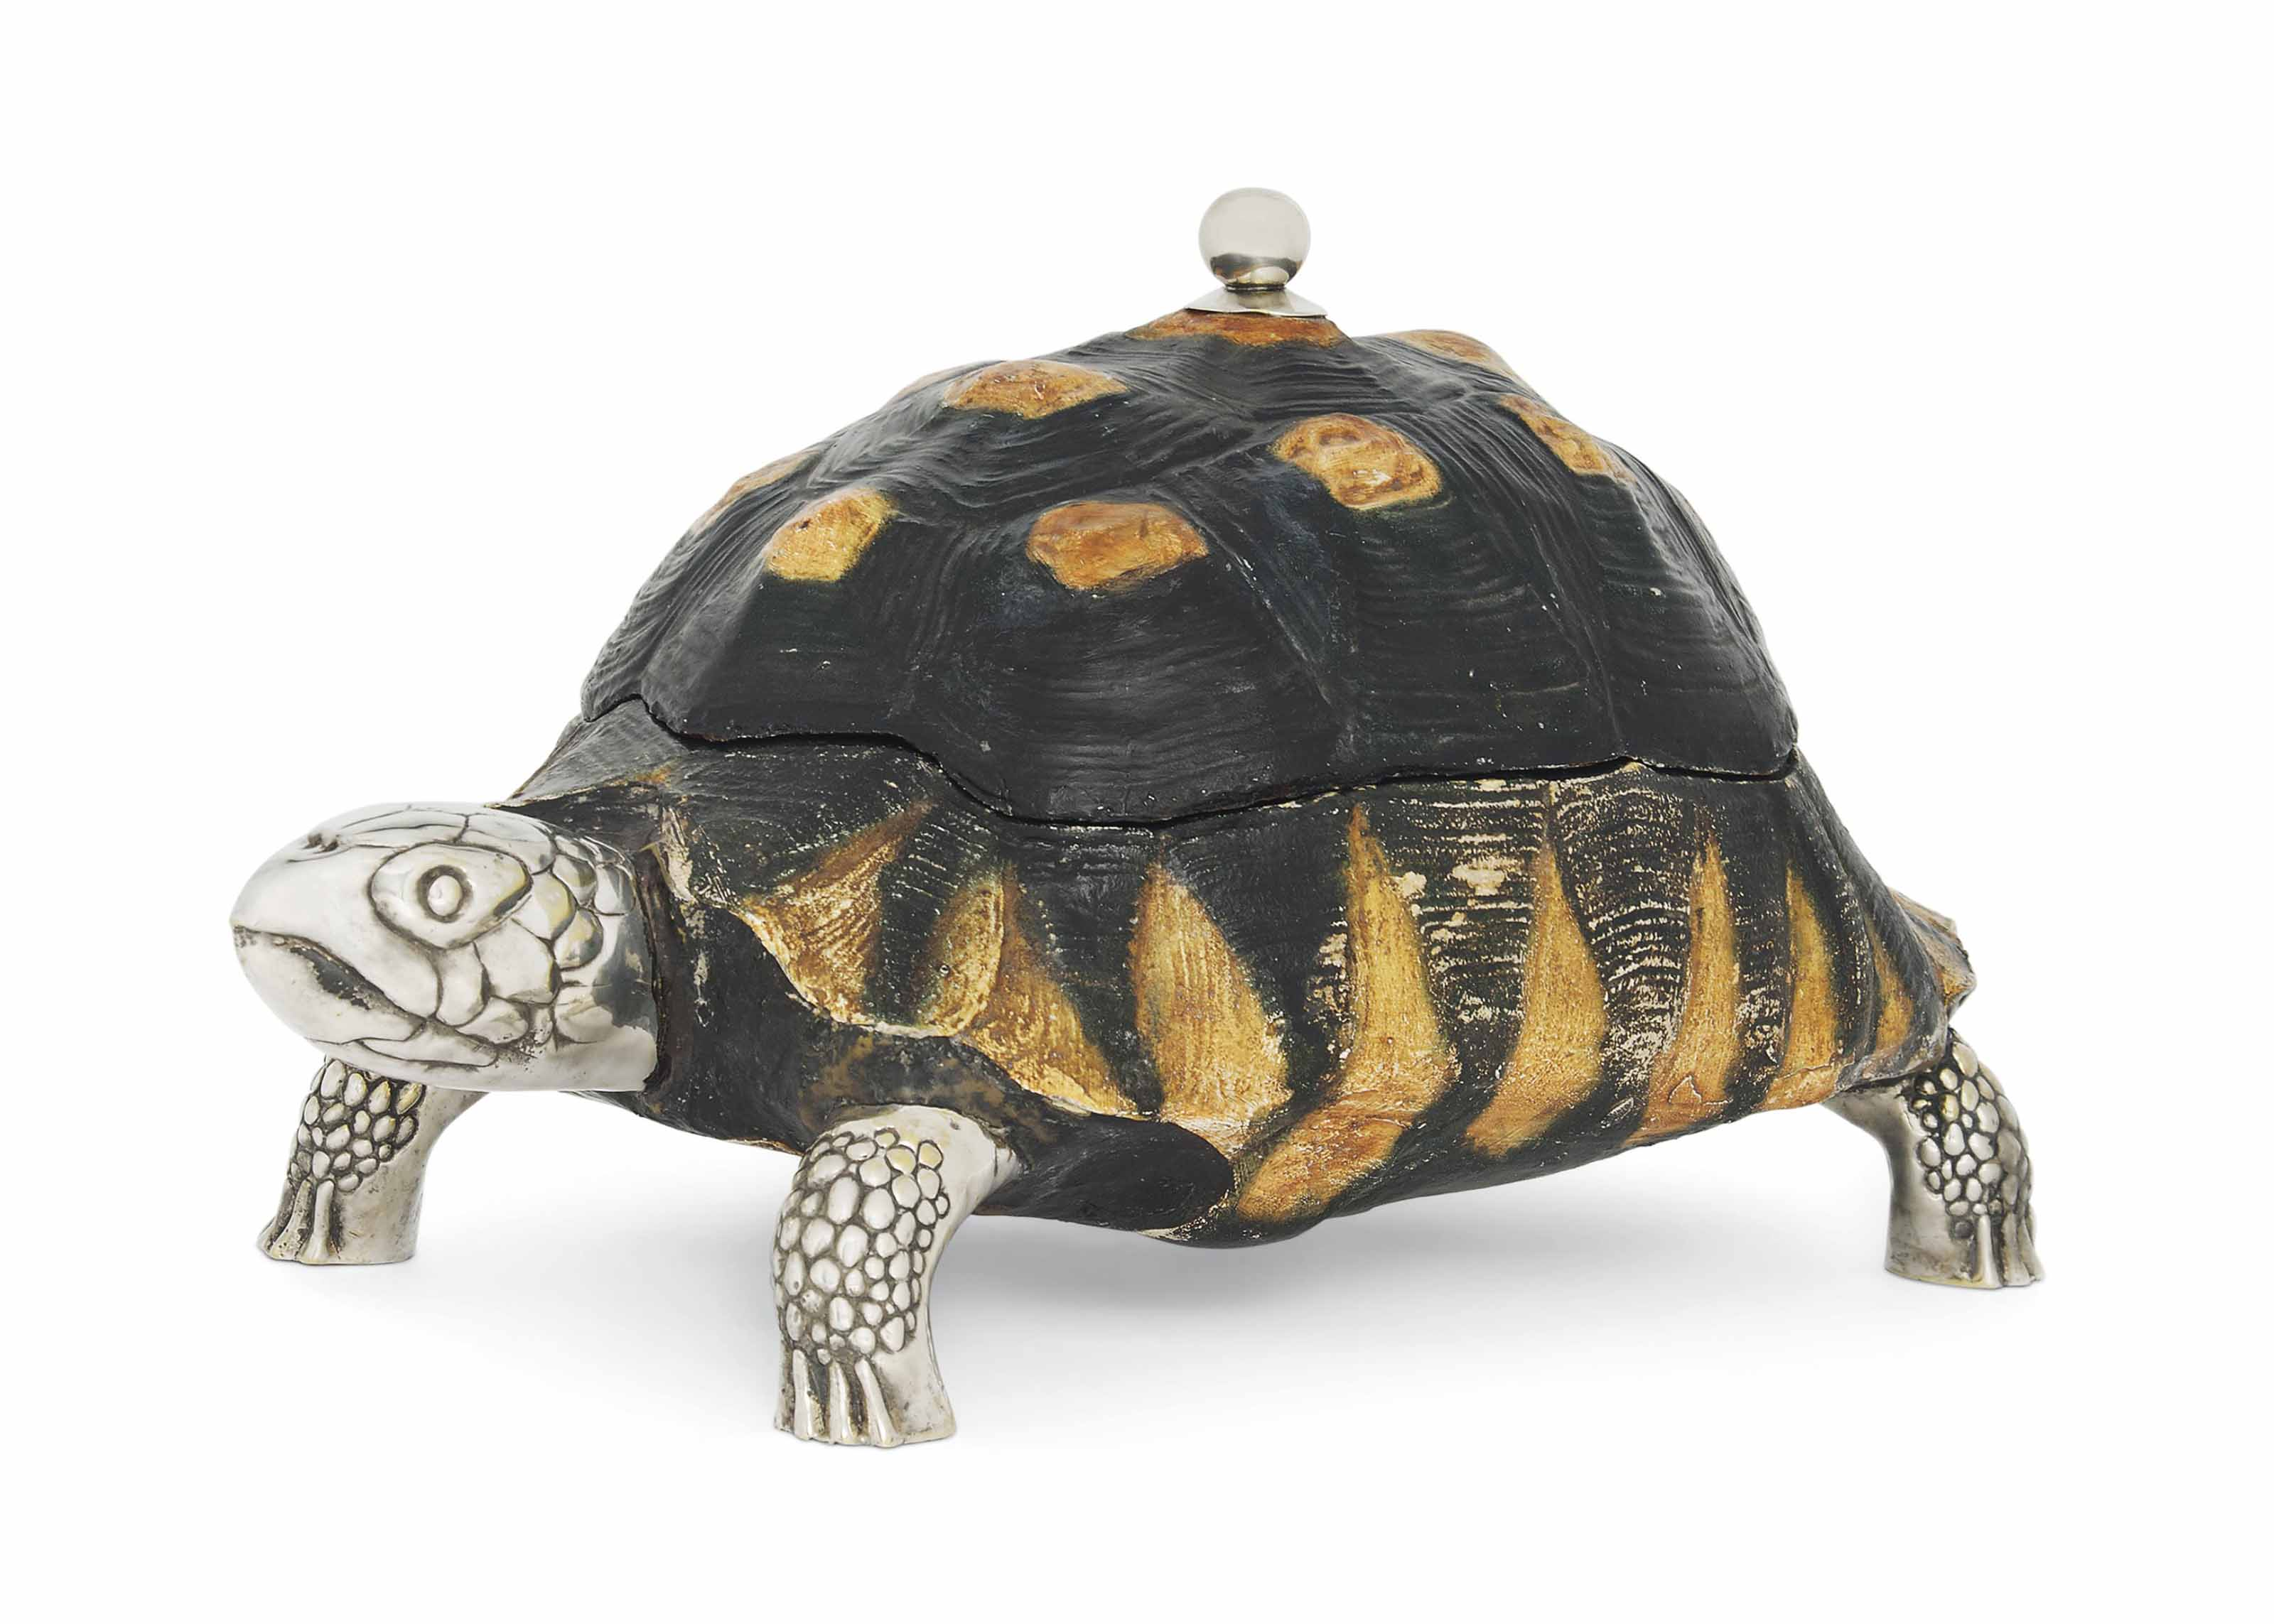 AN ANTHONY REDMILE SILVER-PLATED AND COMPOSITION TORTOISE CENTRE PIECE